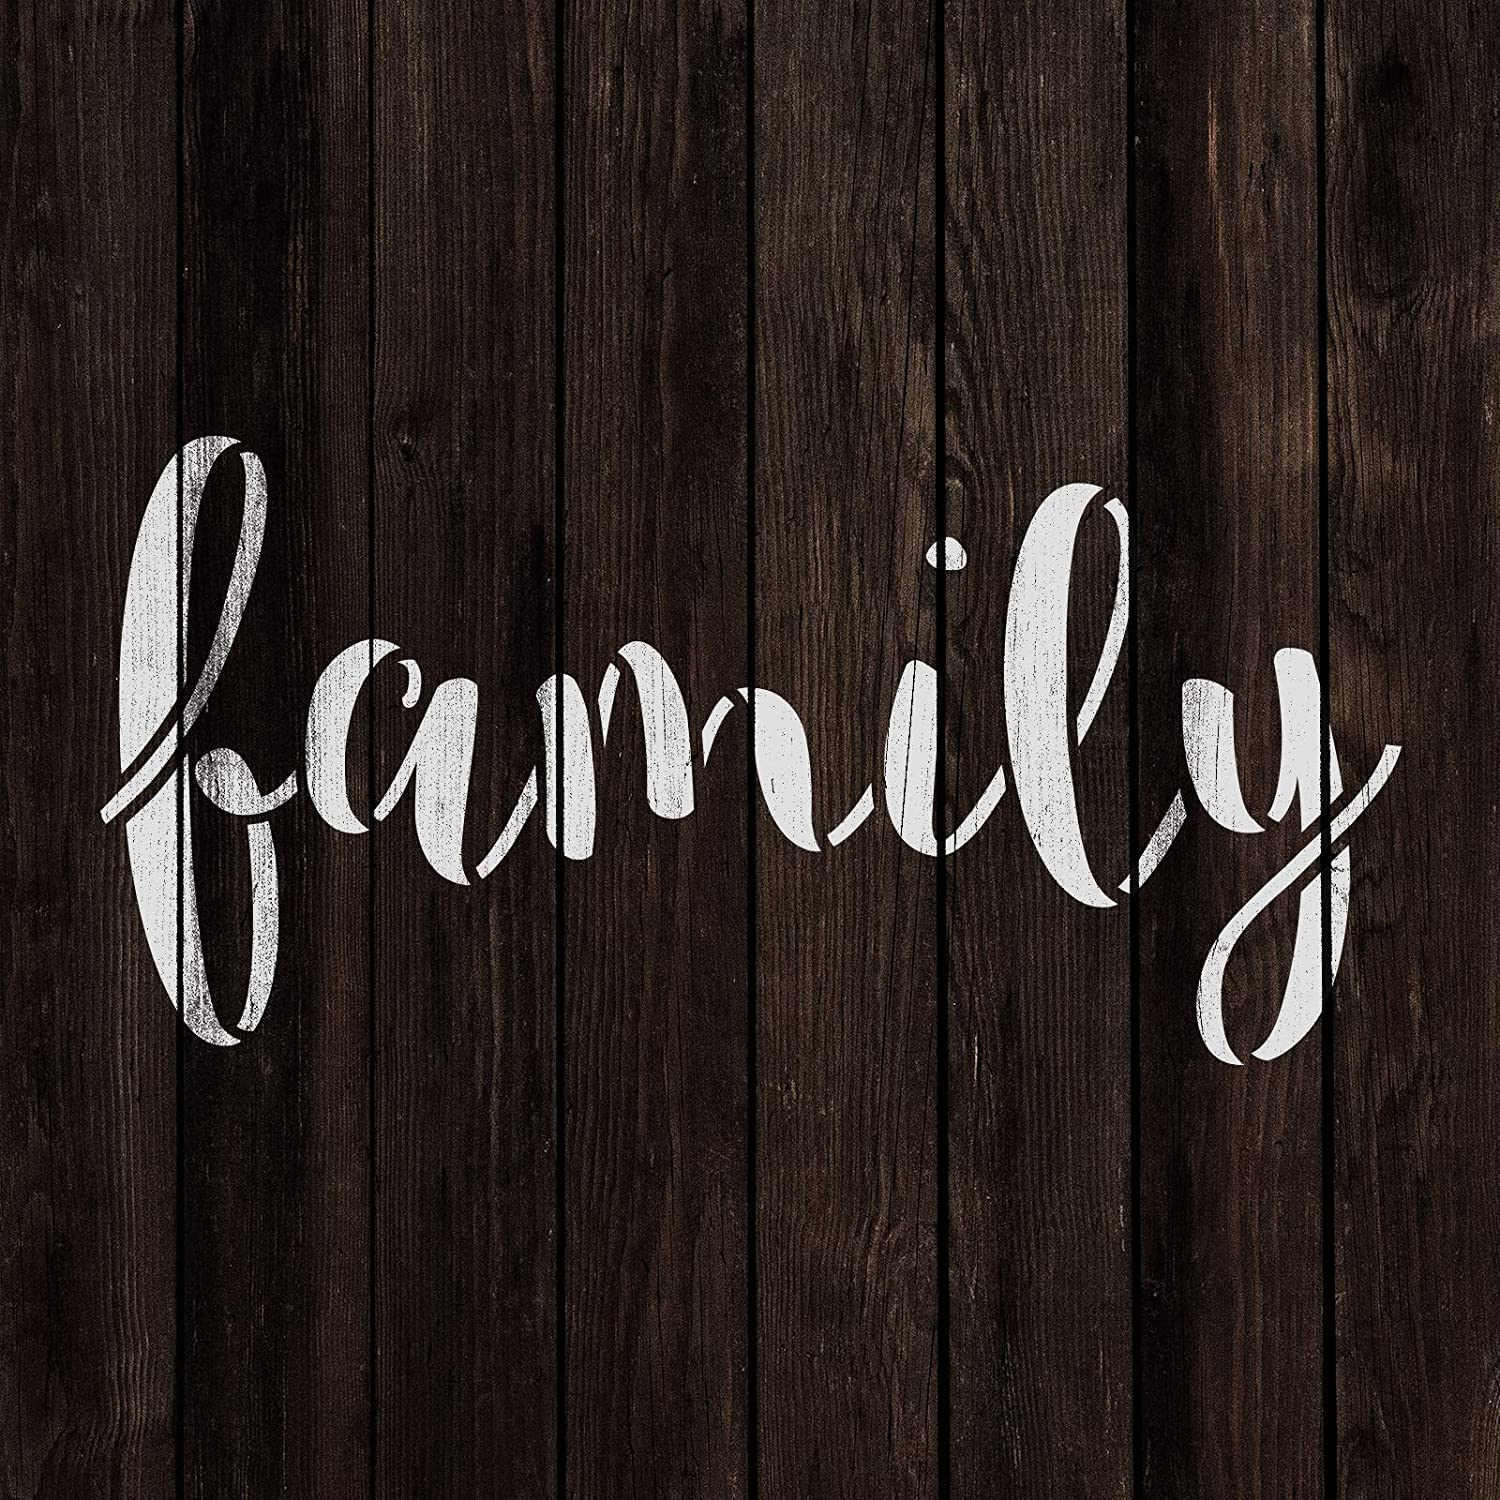 Family Stencil Template for Walls and Crafts Reusable Stencils for Painting in Small /& Large Sizes